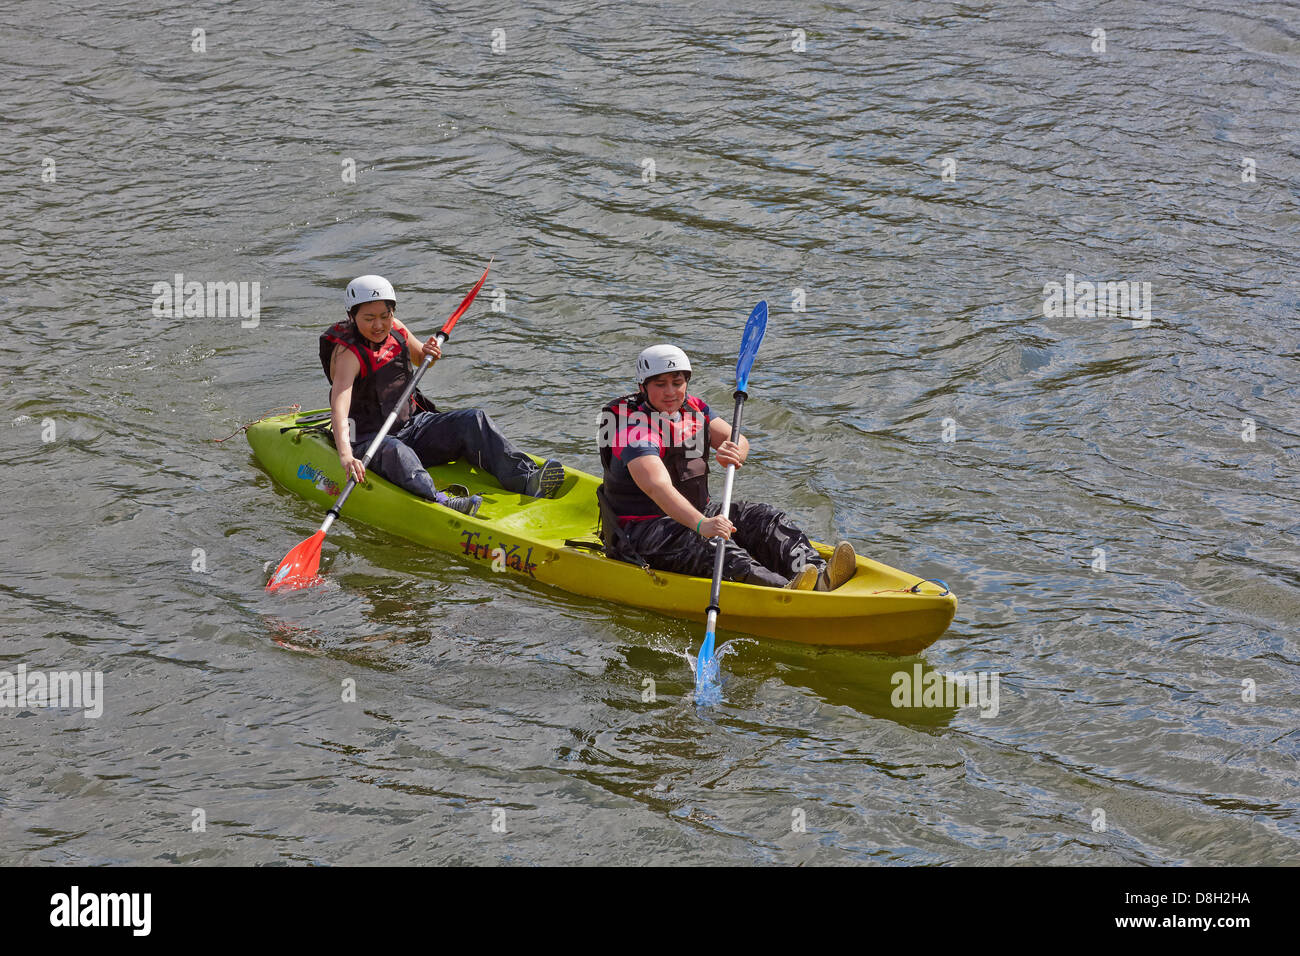 Holidaymakers paddling a TRI-YAK canoe on the River Liffey in Dublin city centre. Dublin, Ireland - Stock Image